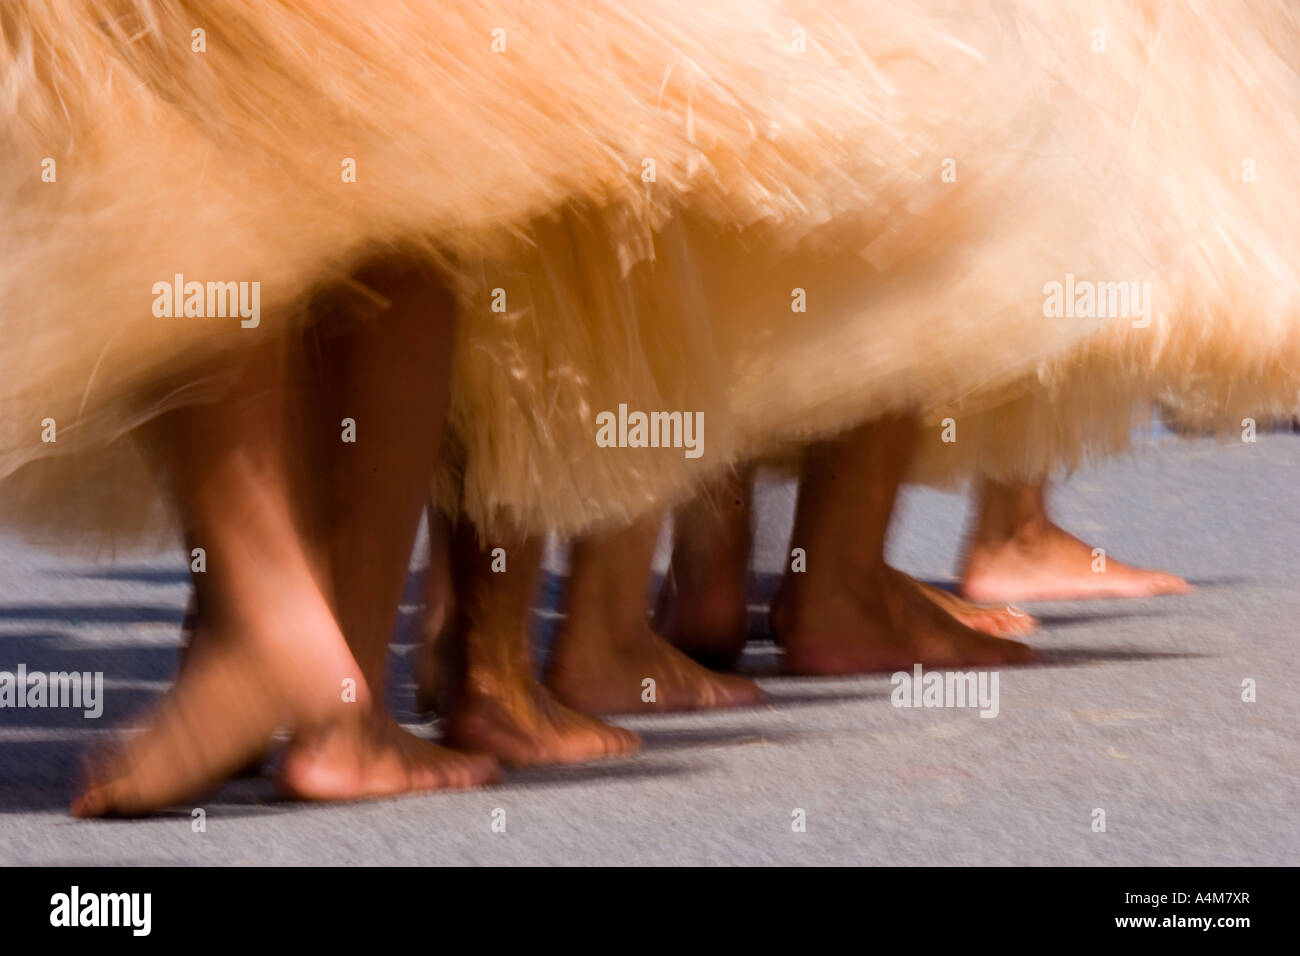 Stock photo of bare footed Hula dancers in grass skirts - Stock Image